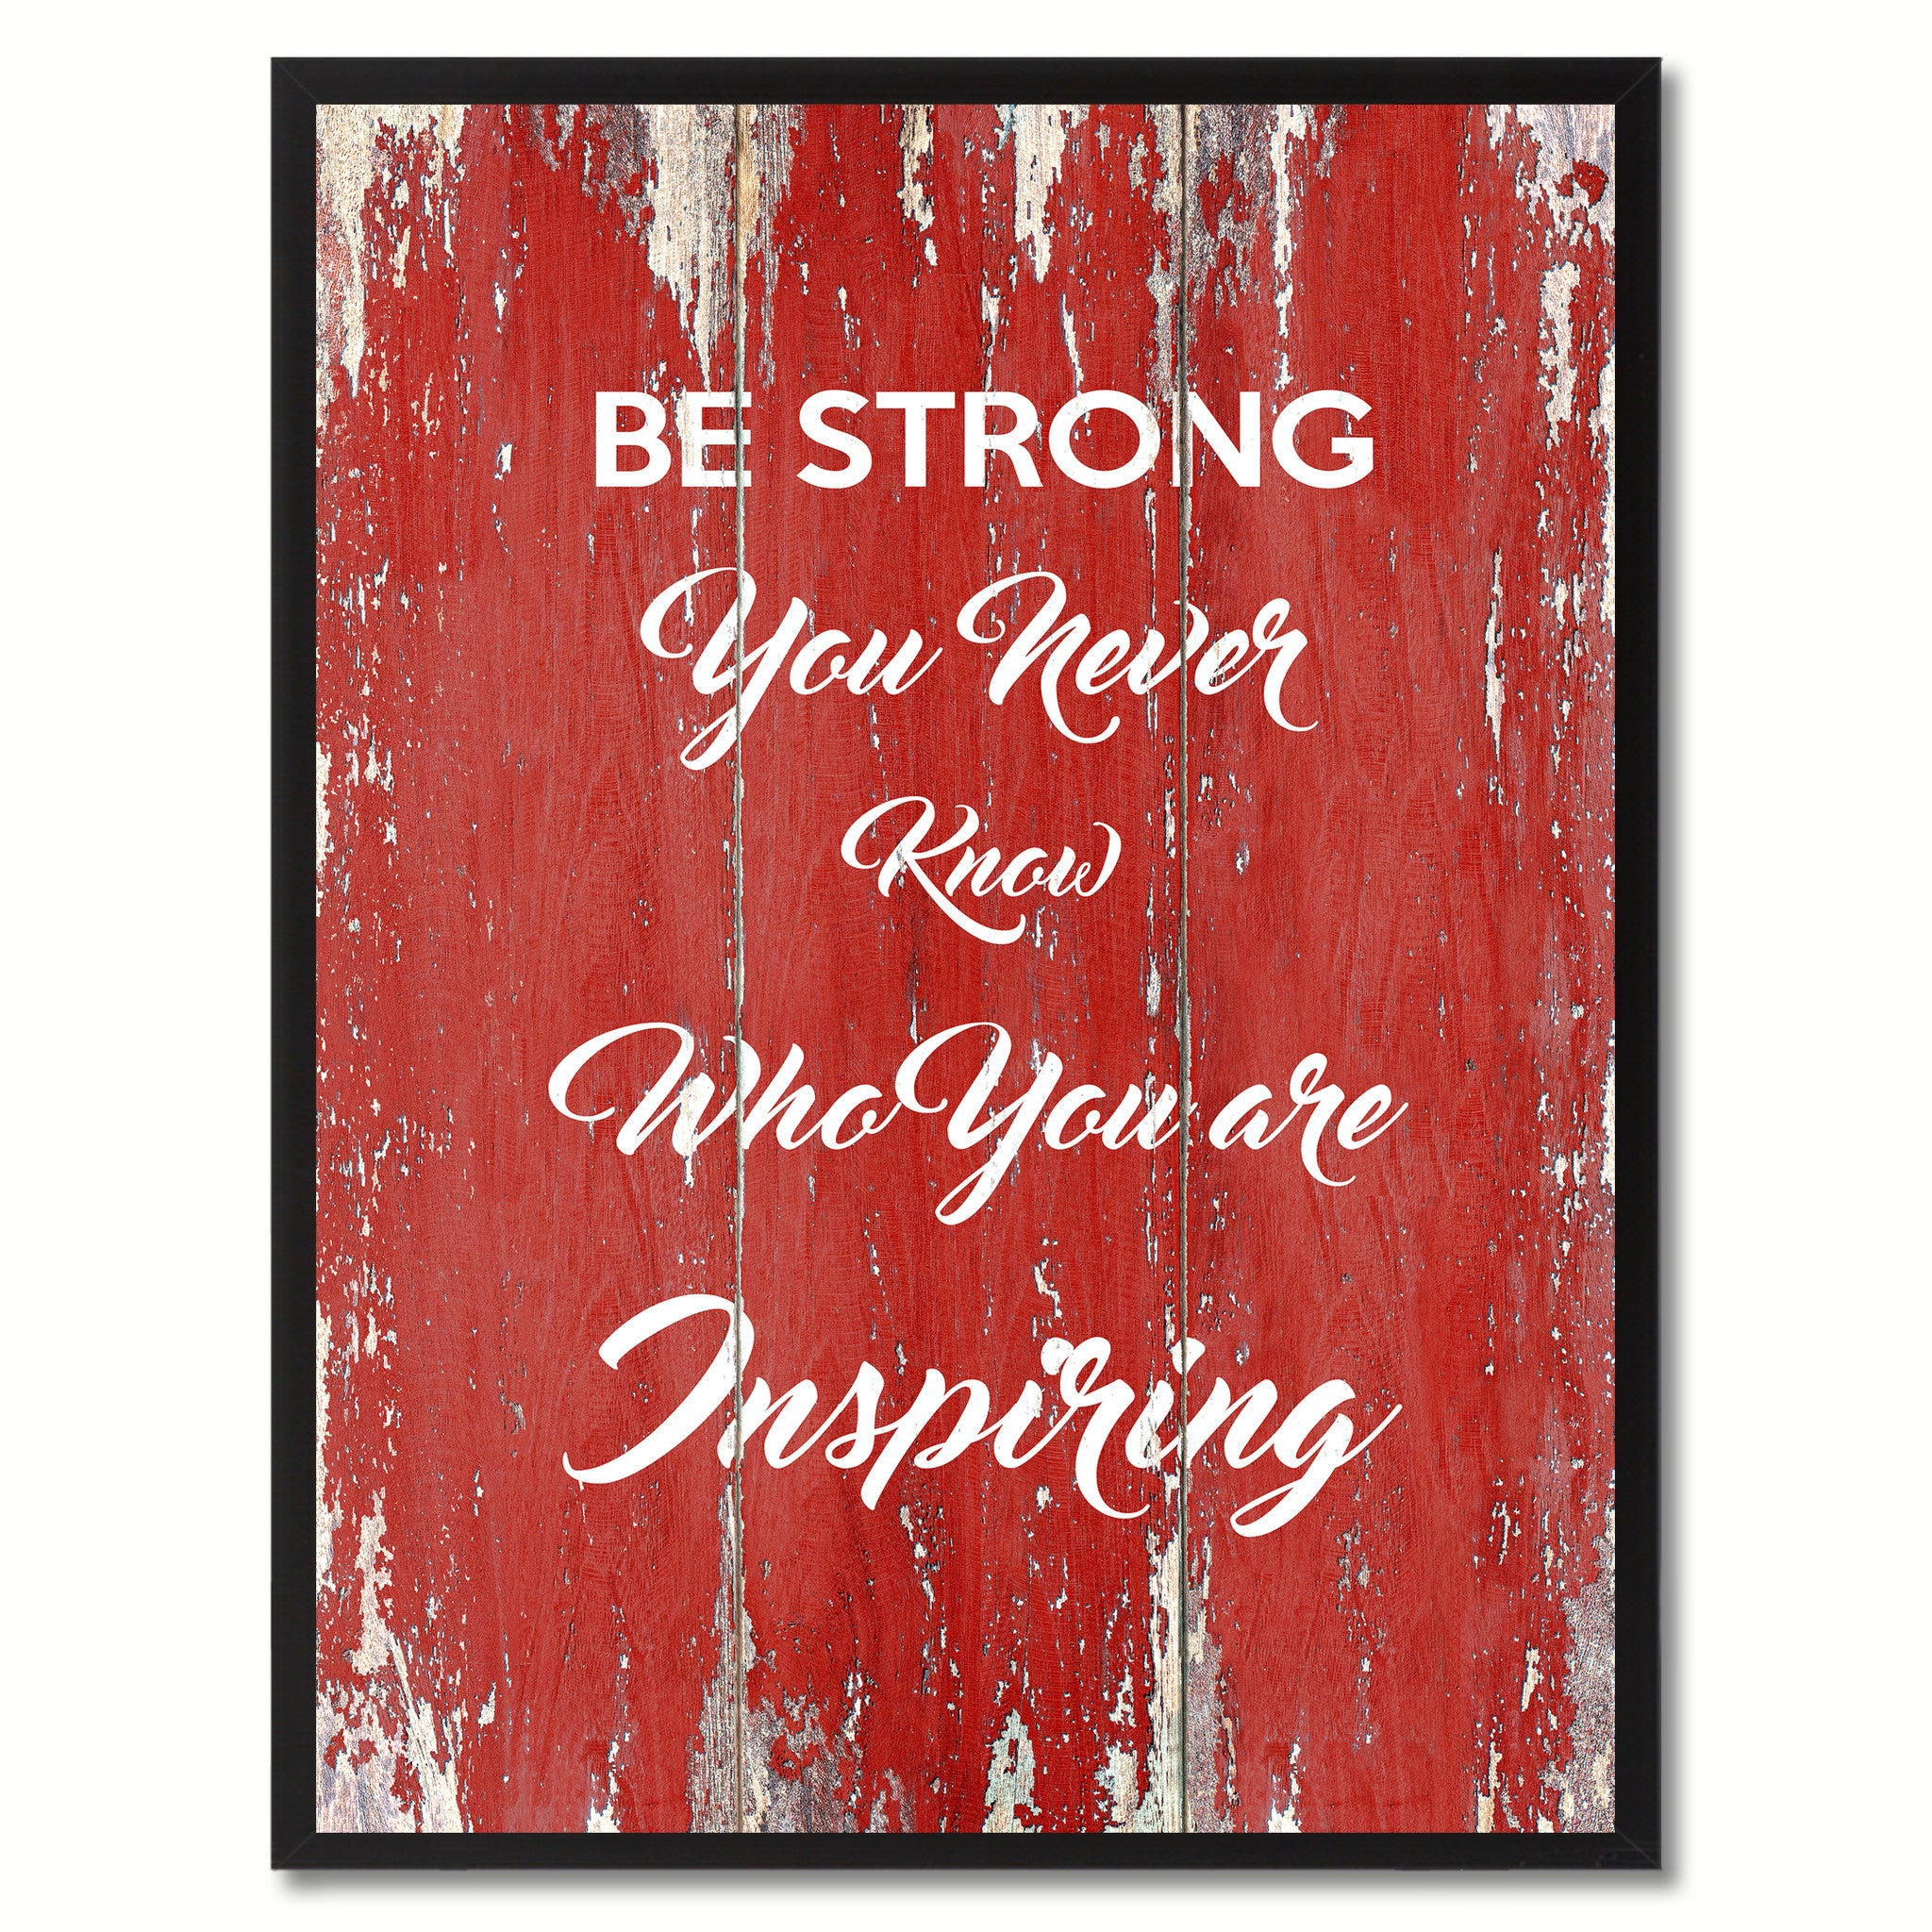 Be Strong You never know who you are Inspiring Quote Saying Gift Ideas Home Décor Wall Art